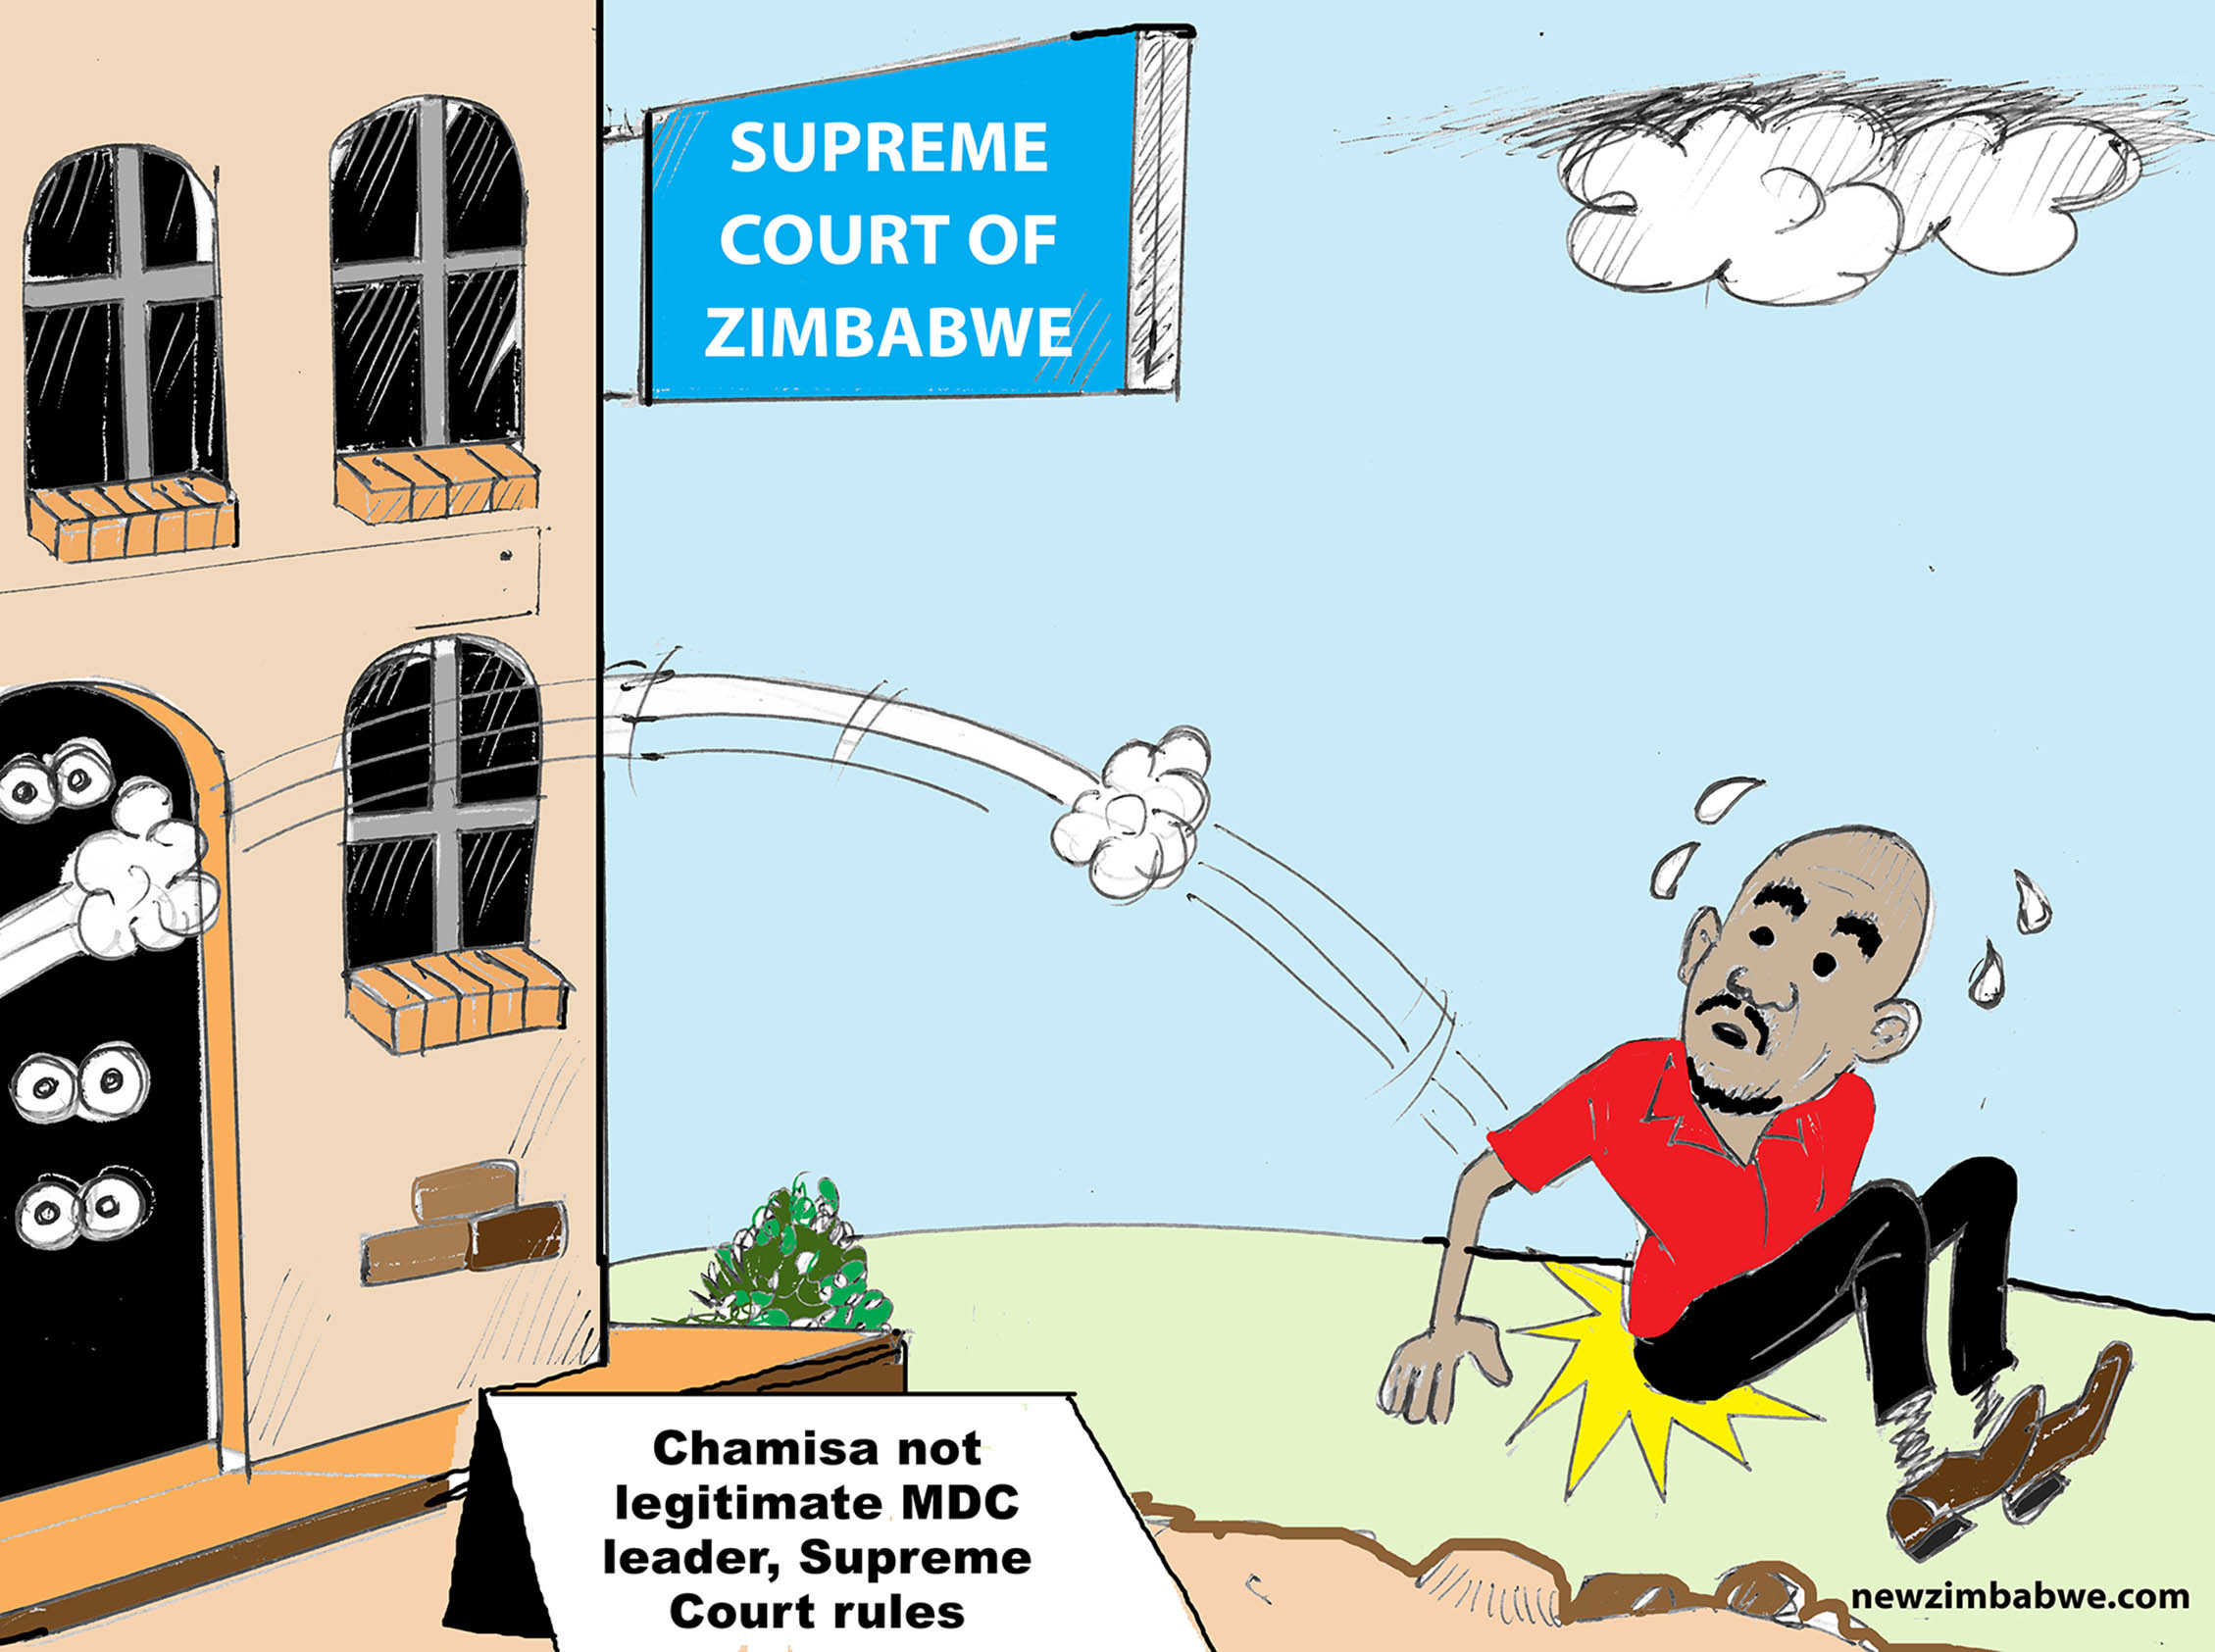 Of supreme court ruling and Chamisa